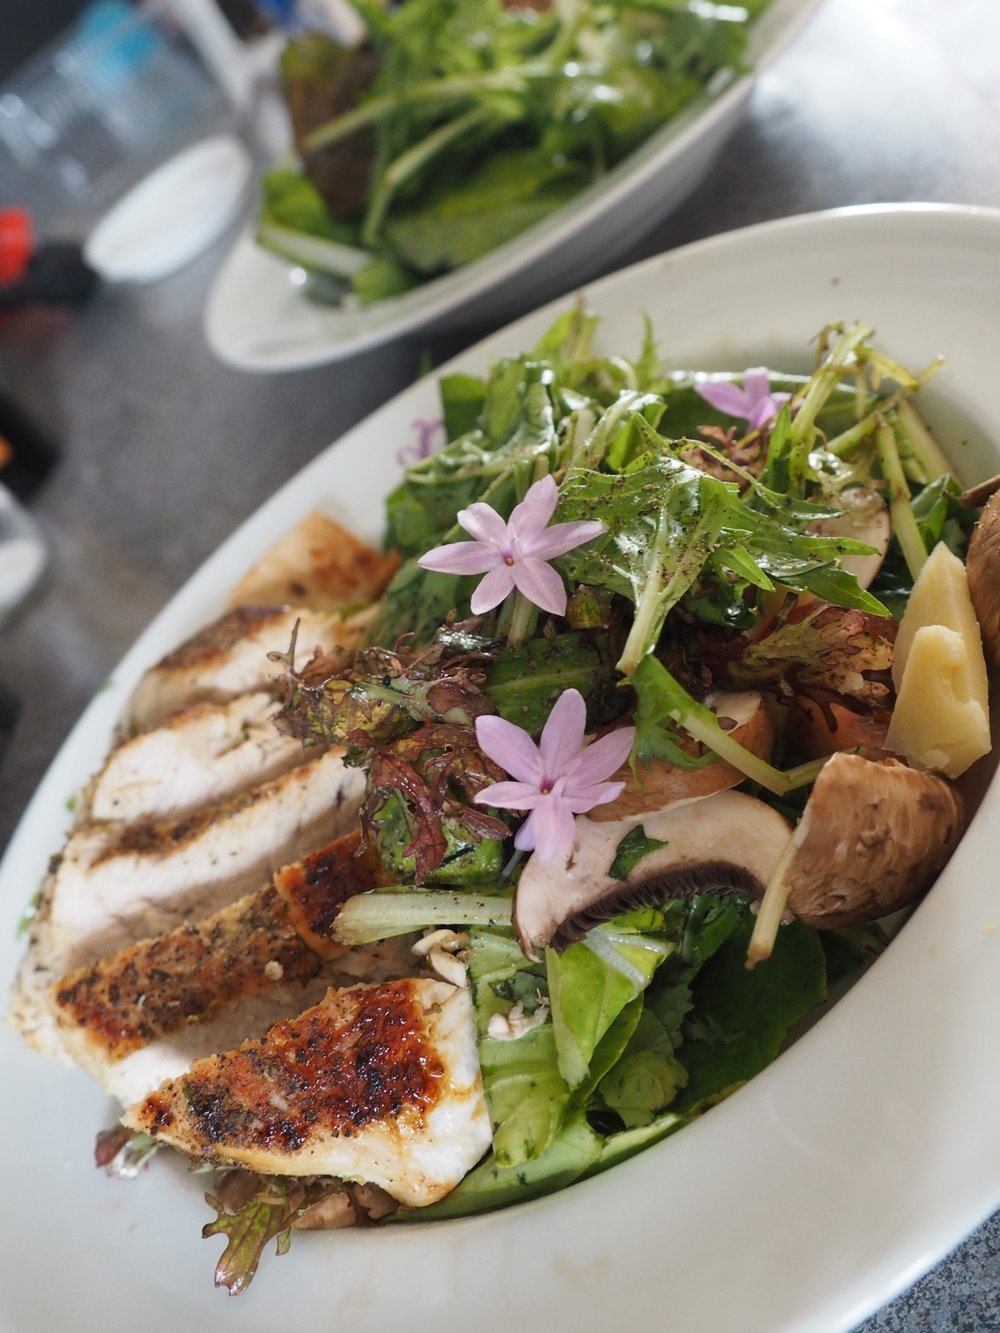 Grilled Chicken Salad with Edible Flowers